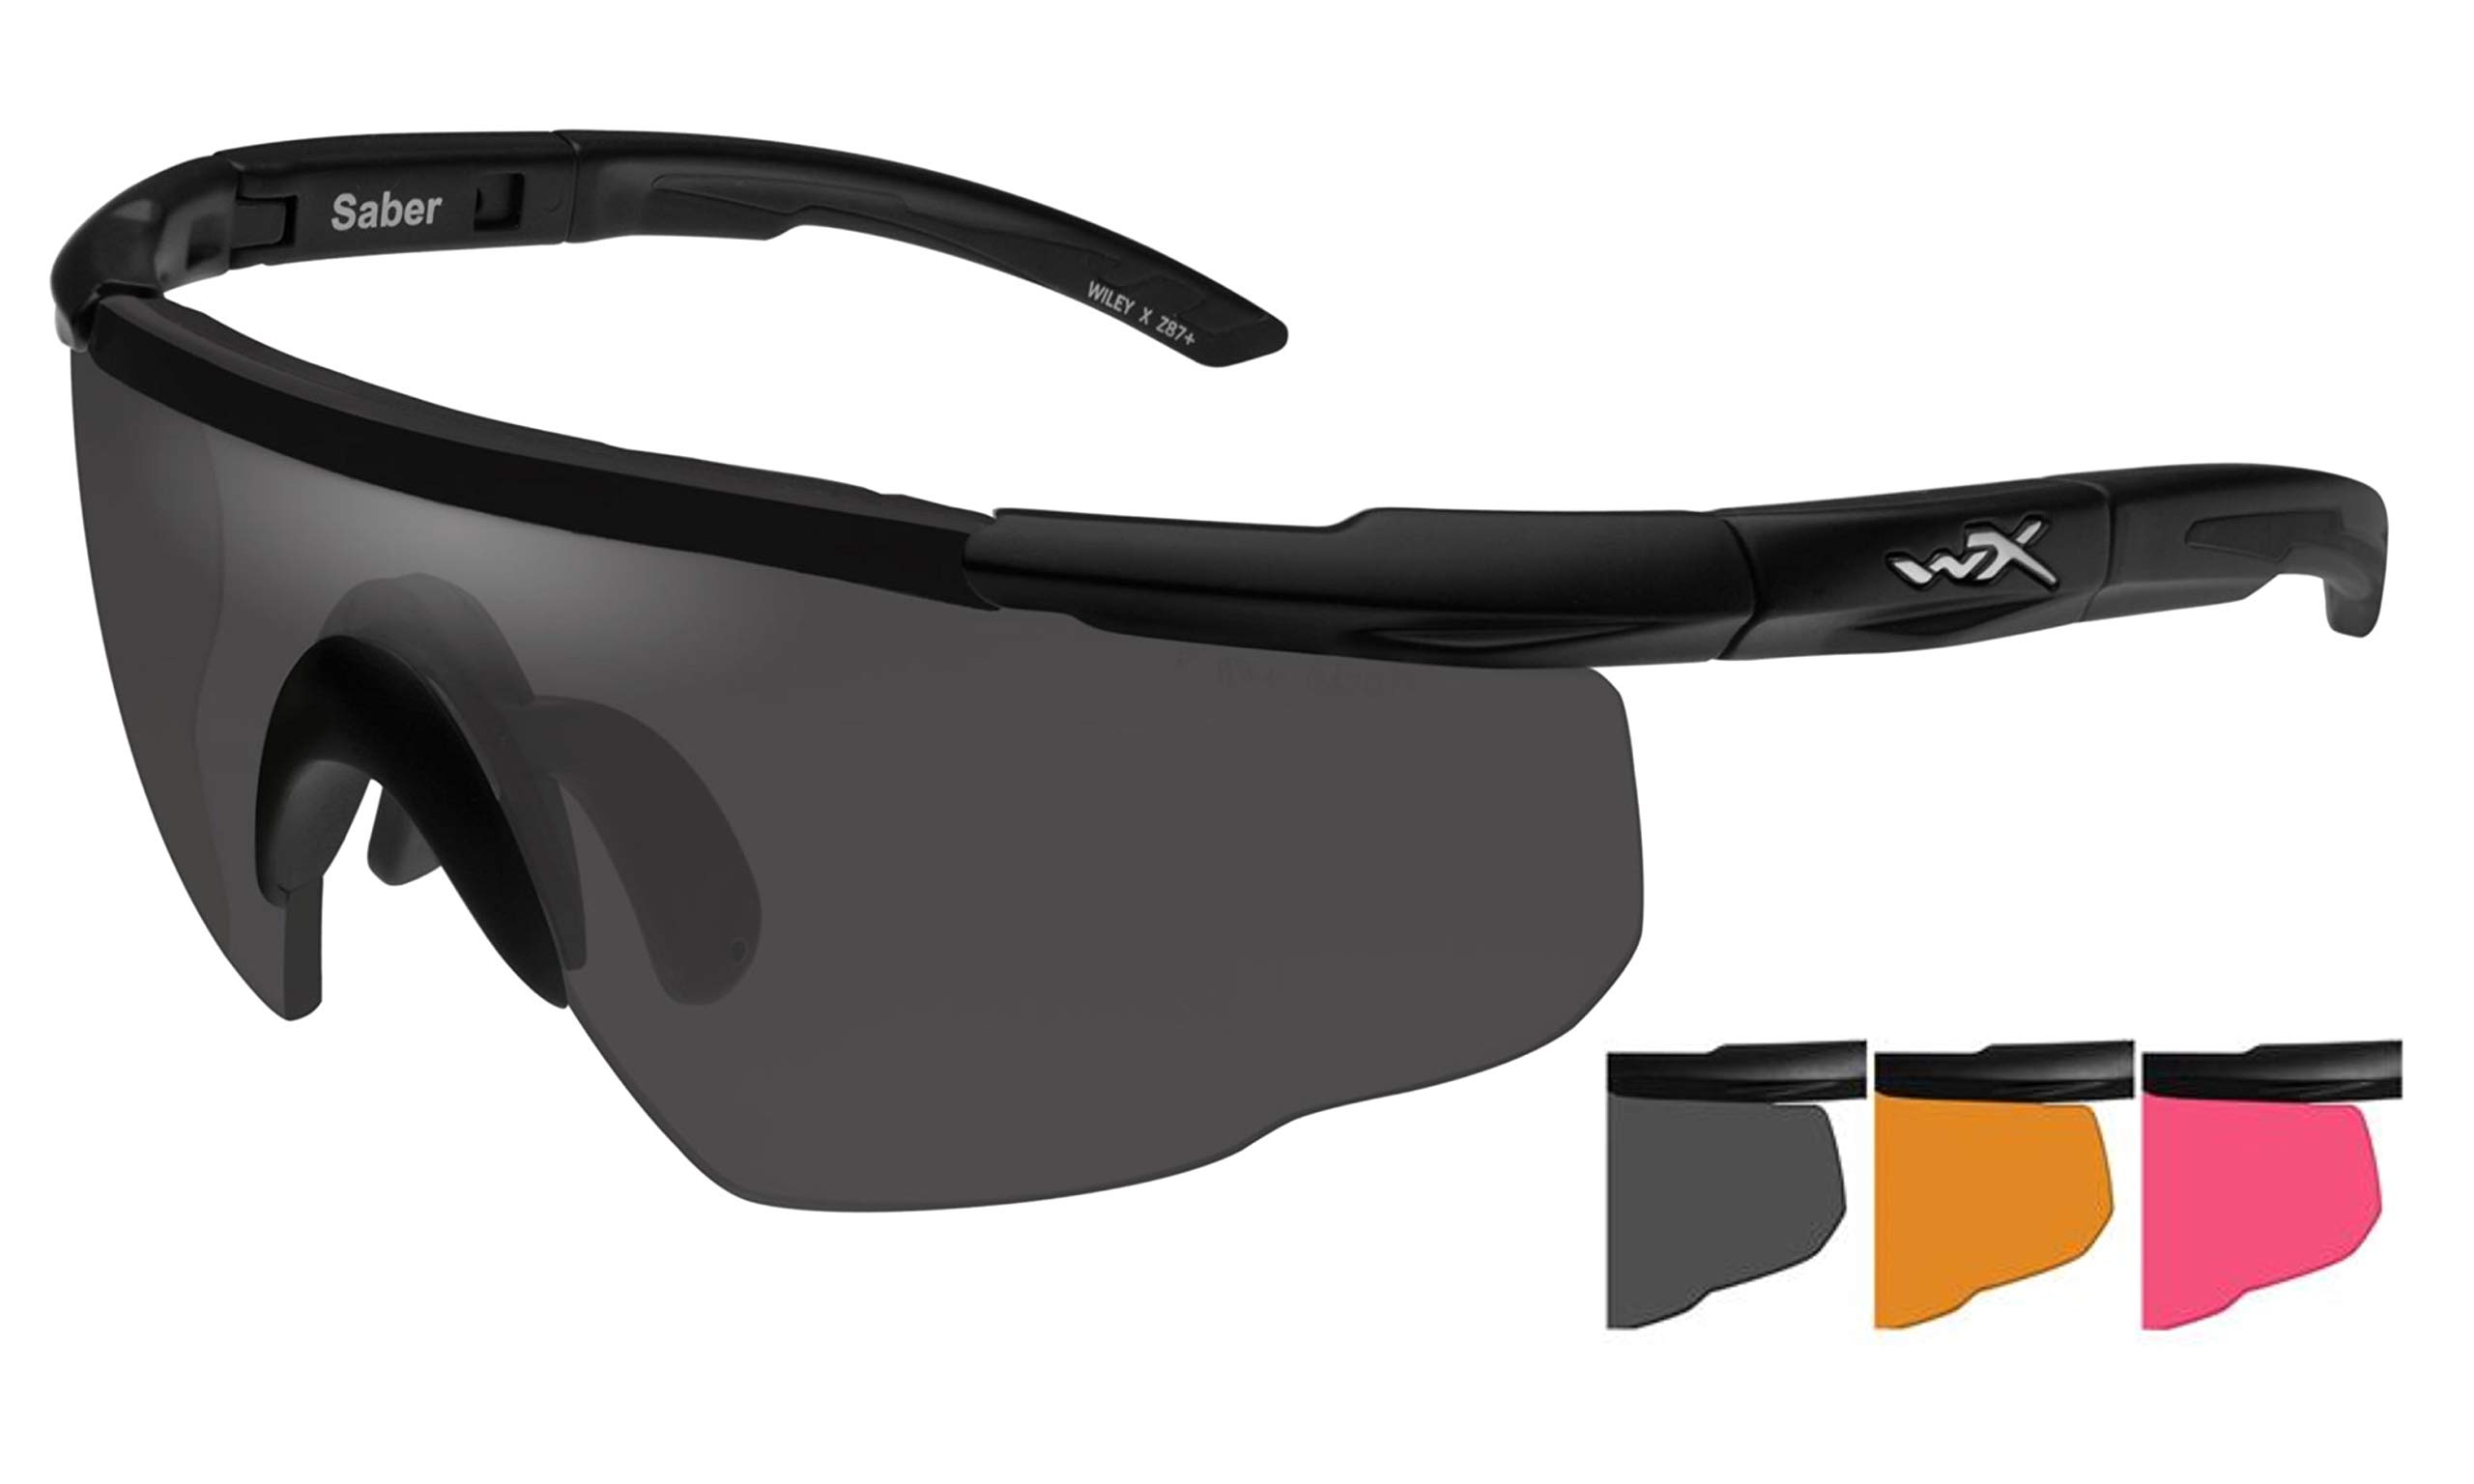 Wiley X Saber Advanced Sunglasses, Smoke Grey/Light Rust/Vermillion, Matte Black by Wiley X